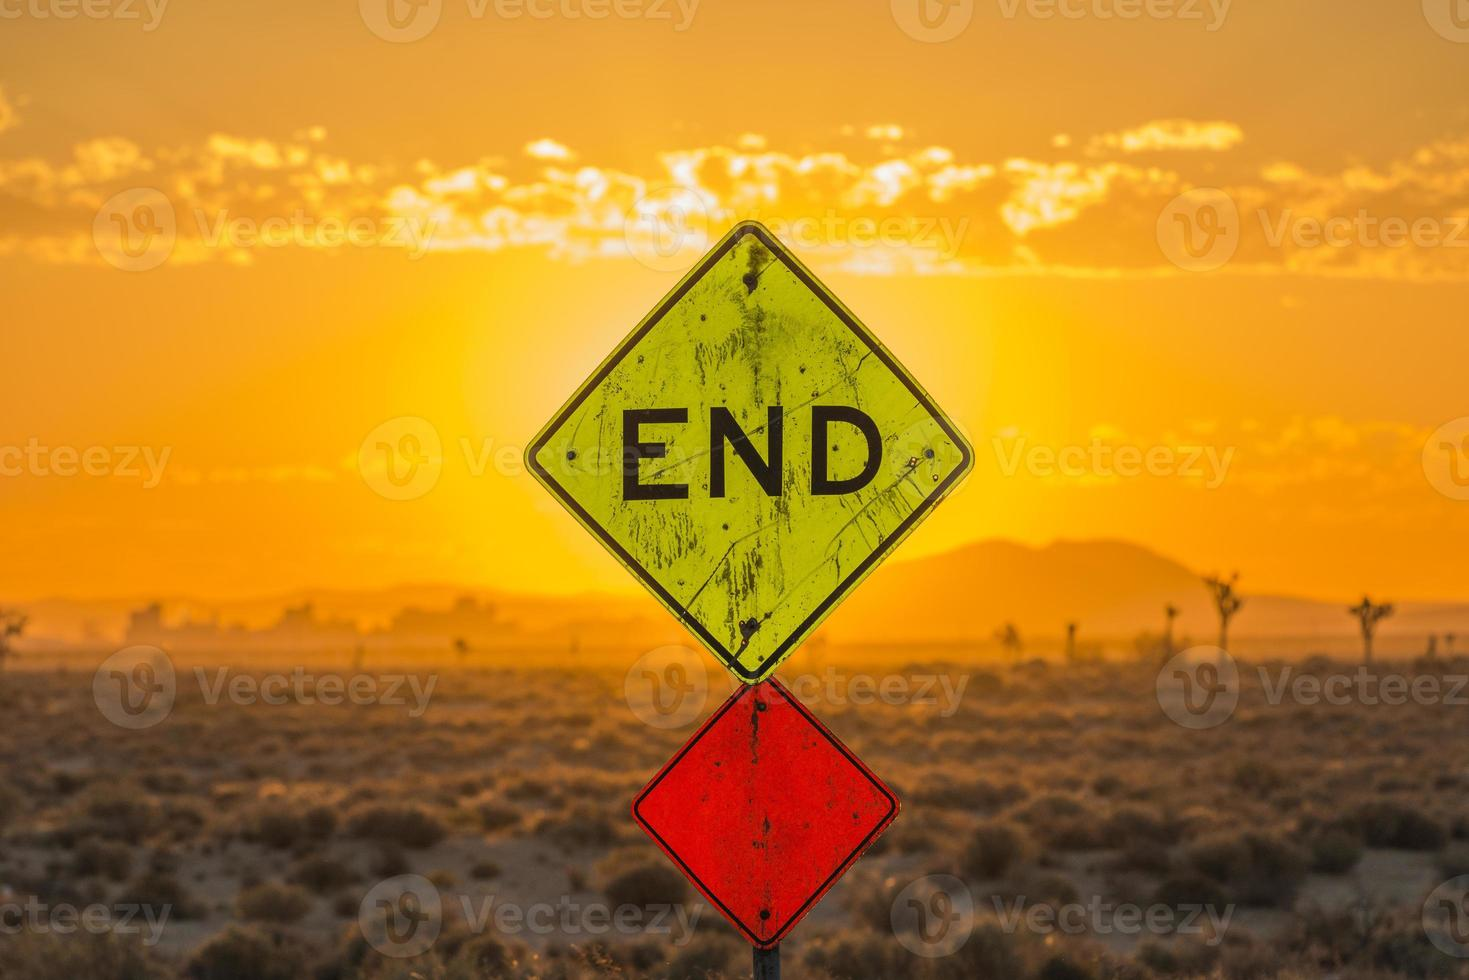 End sign in the desert photo